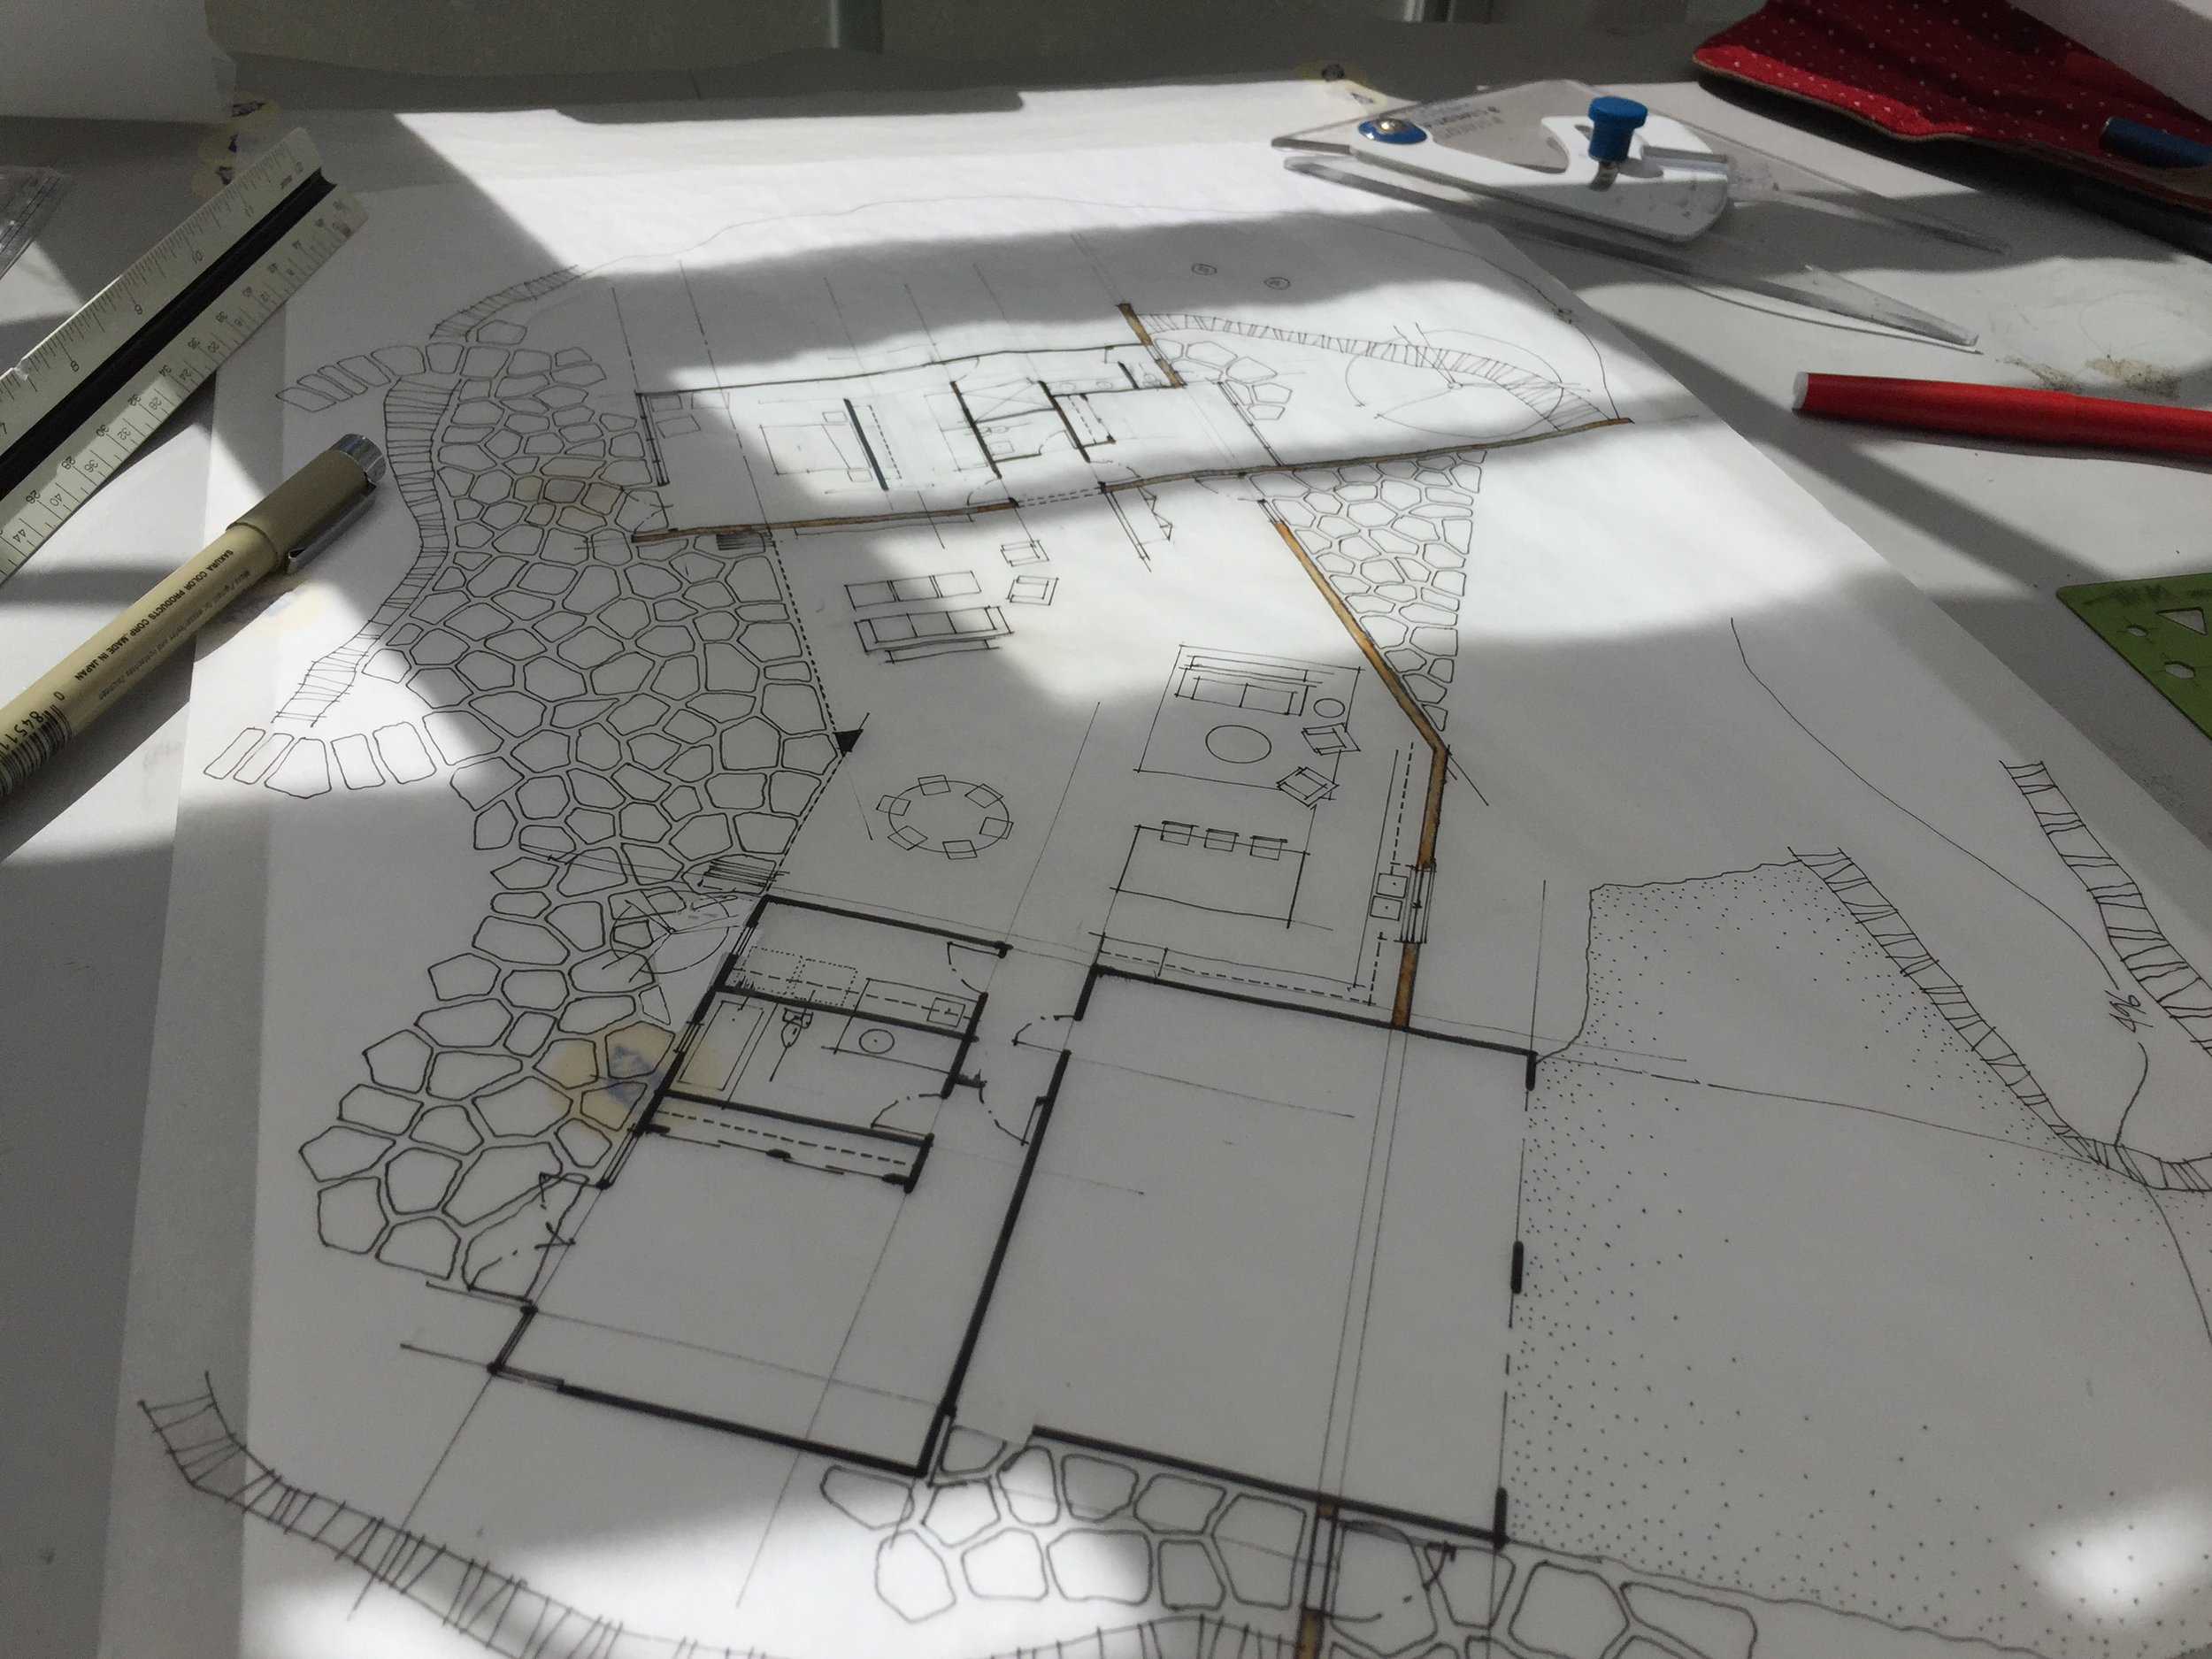 Plan study for replacement residence in Santa Rosa